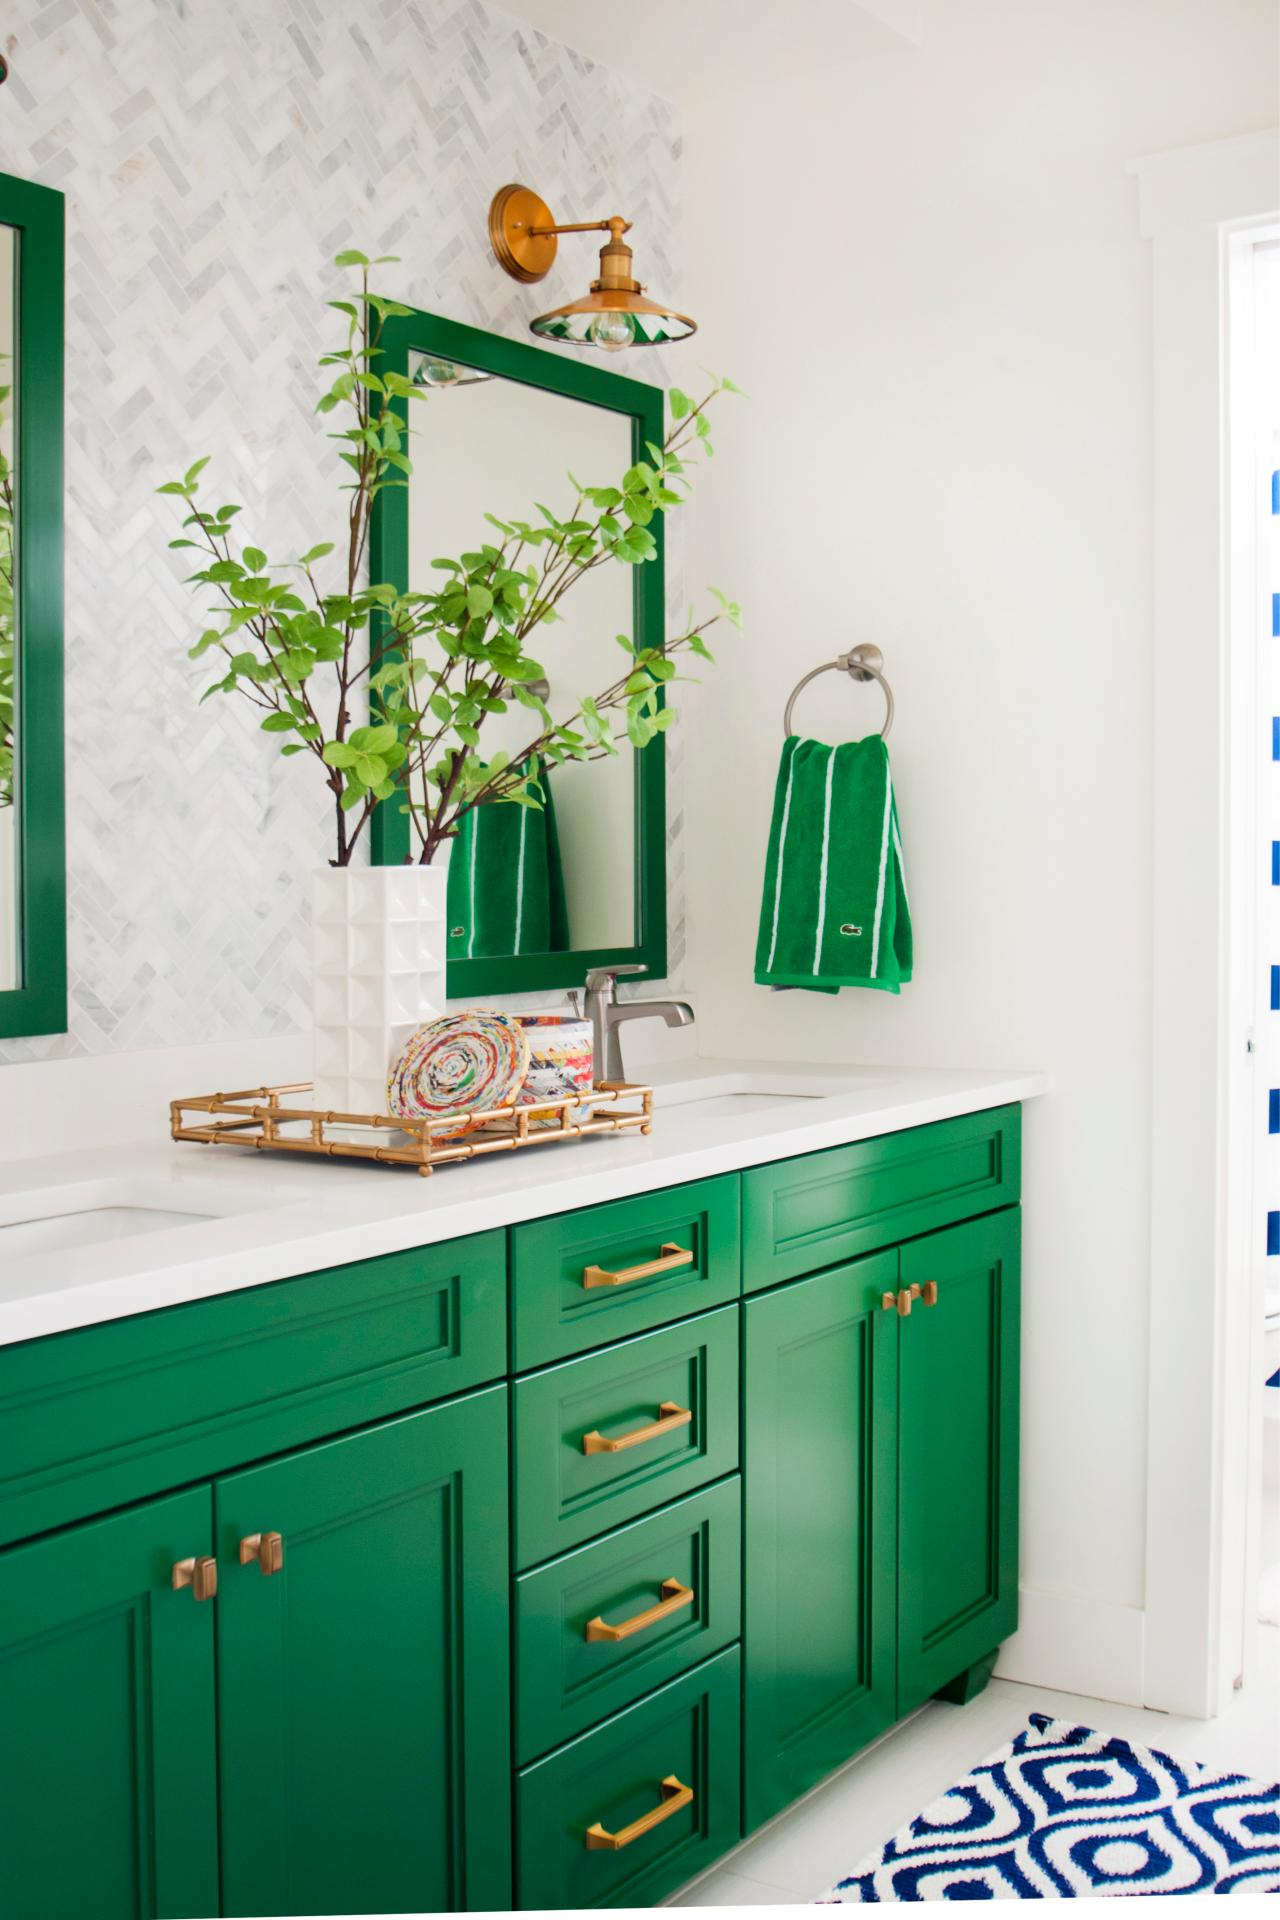 Bathroom Ideas Green 5 fresh bathroom colors to try in 2017 | hgtv's decorating